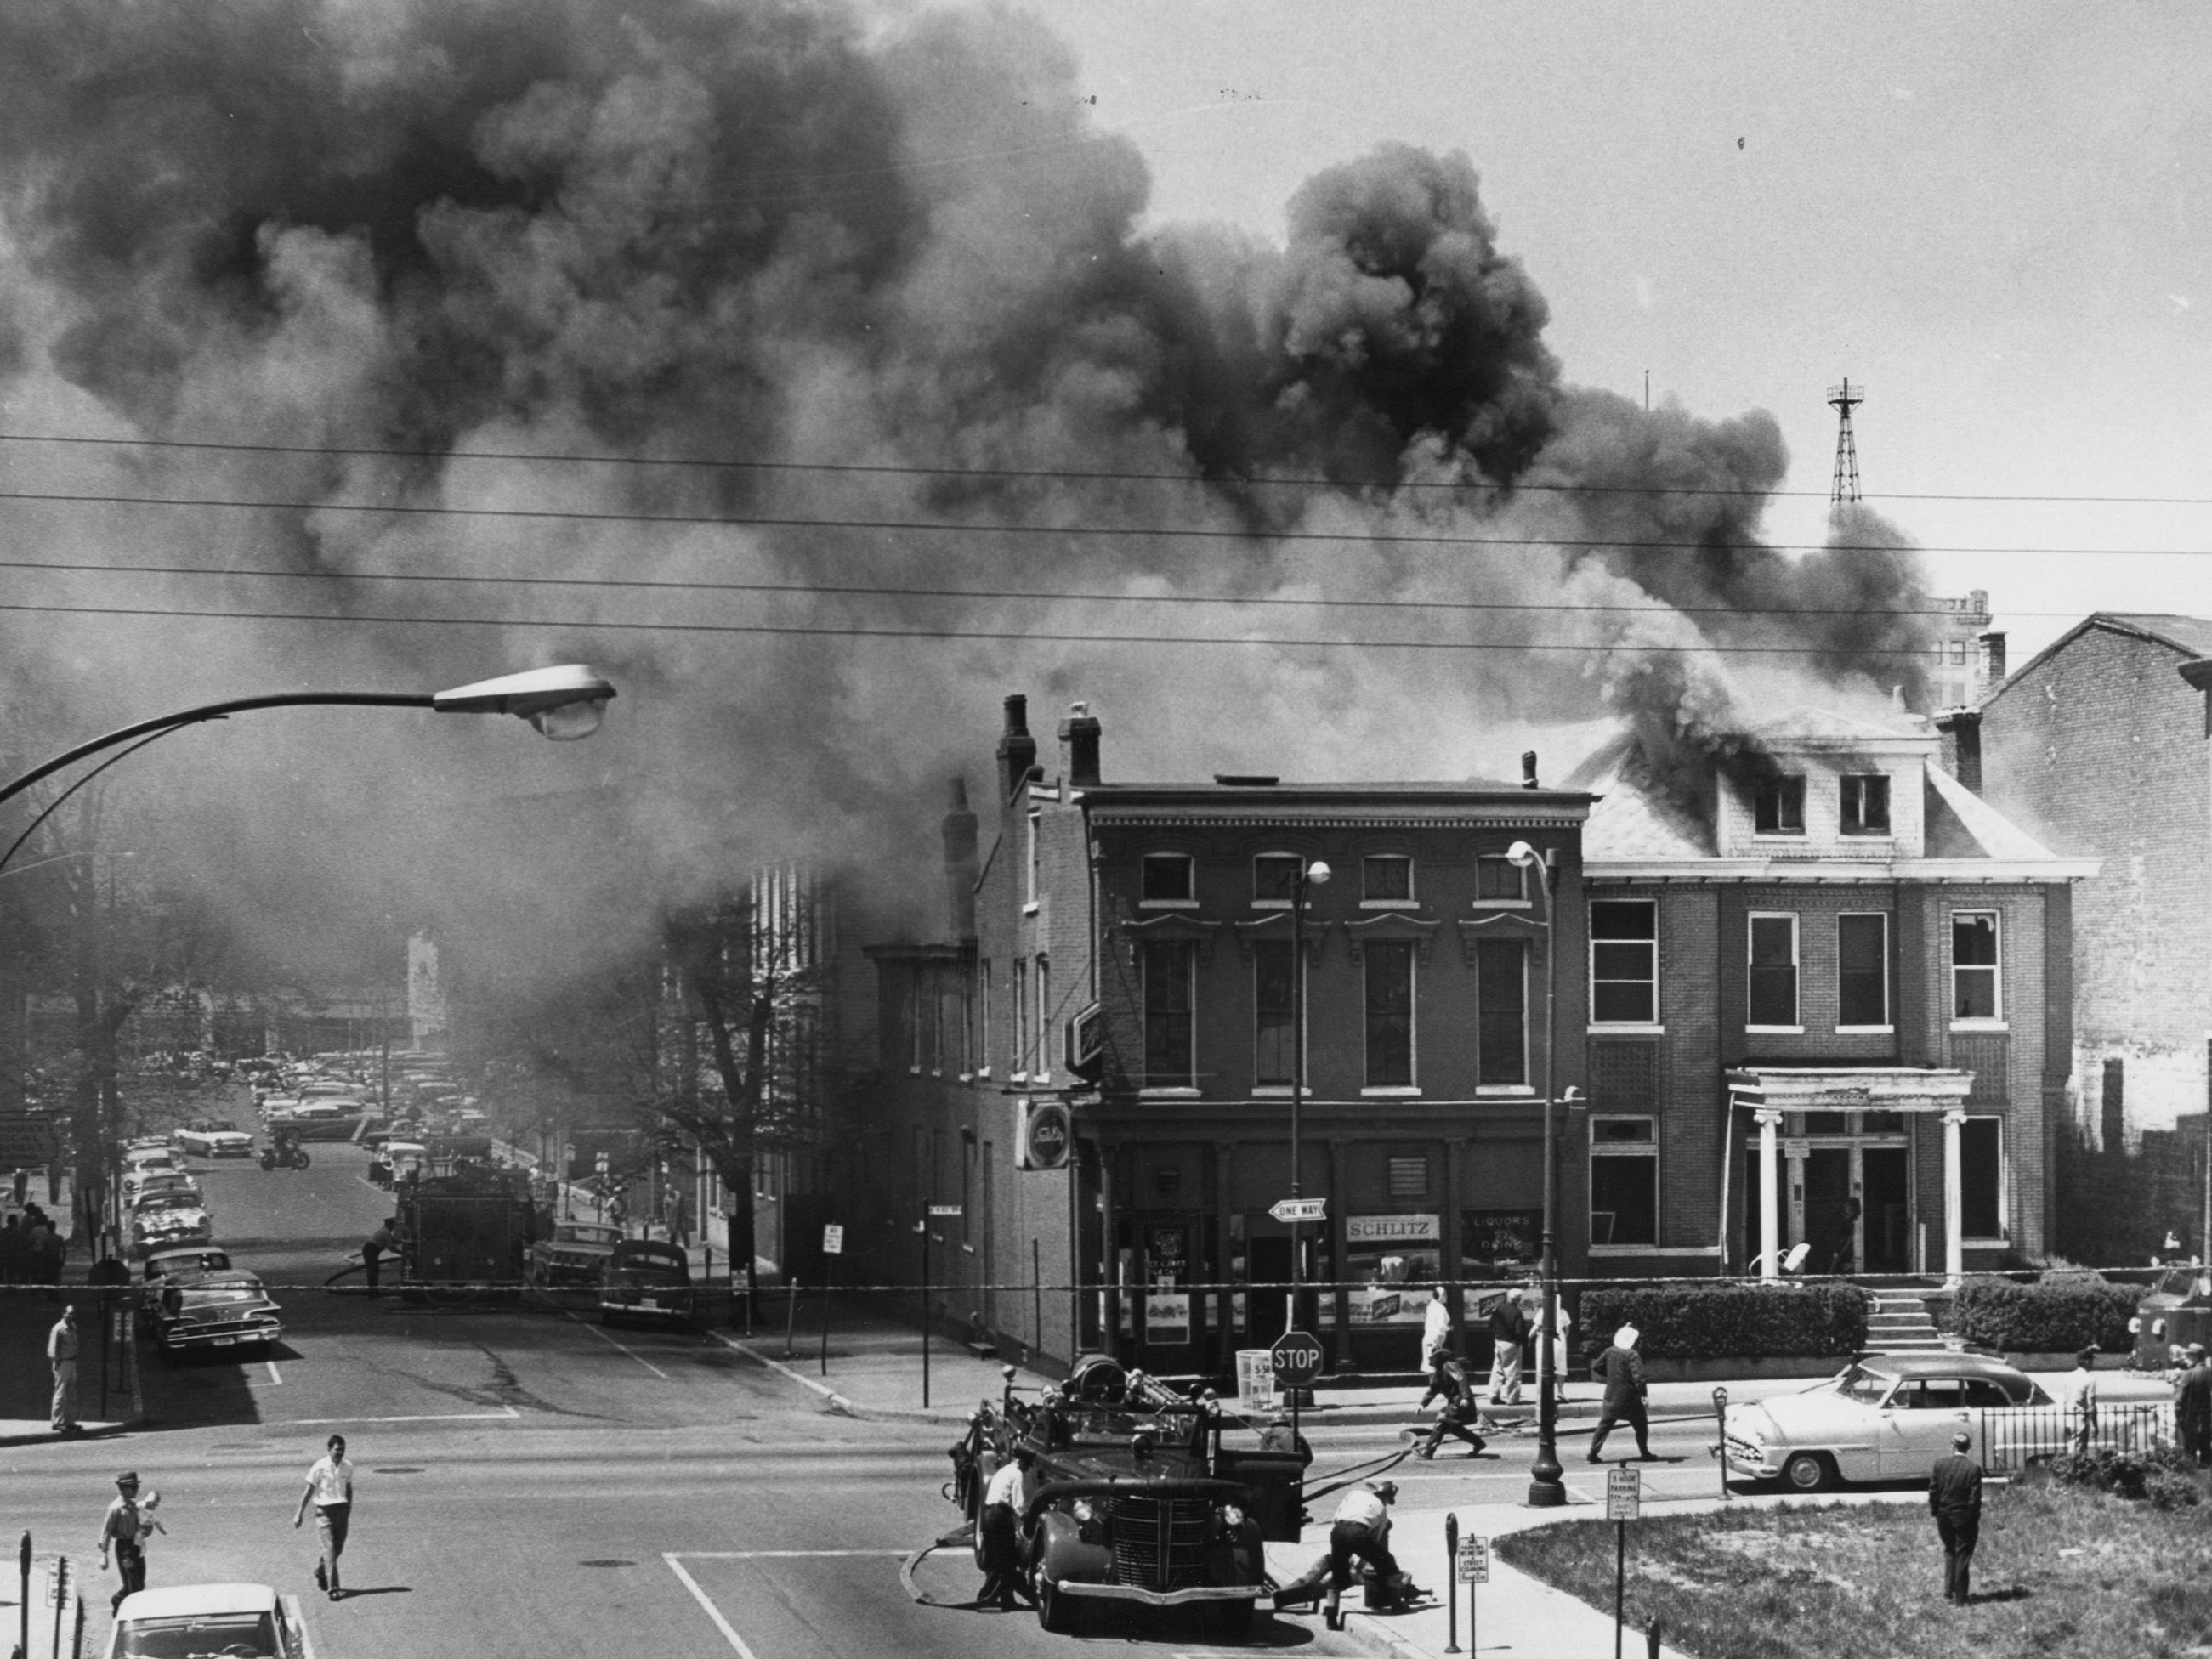 Firemen battled for over 2 hours yesterday before quelling two separate fires involving four buildings in the 600 block of South First near Gray. 